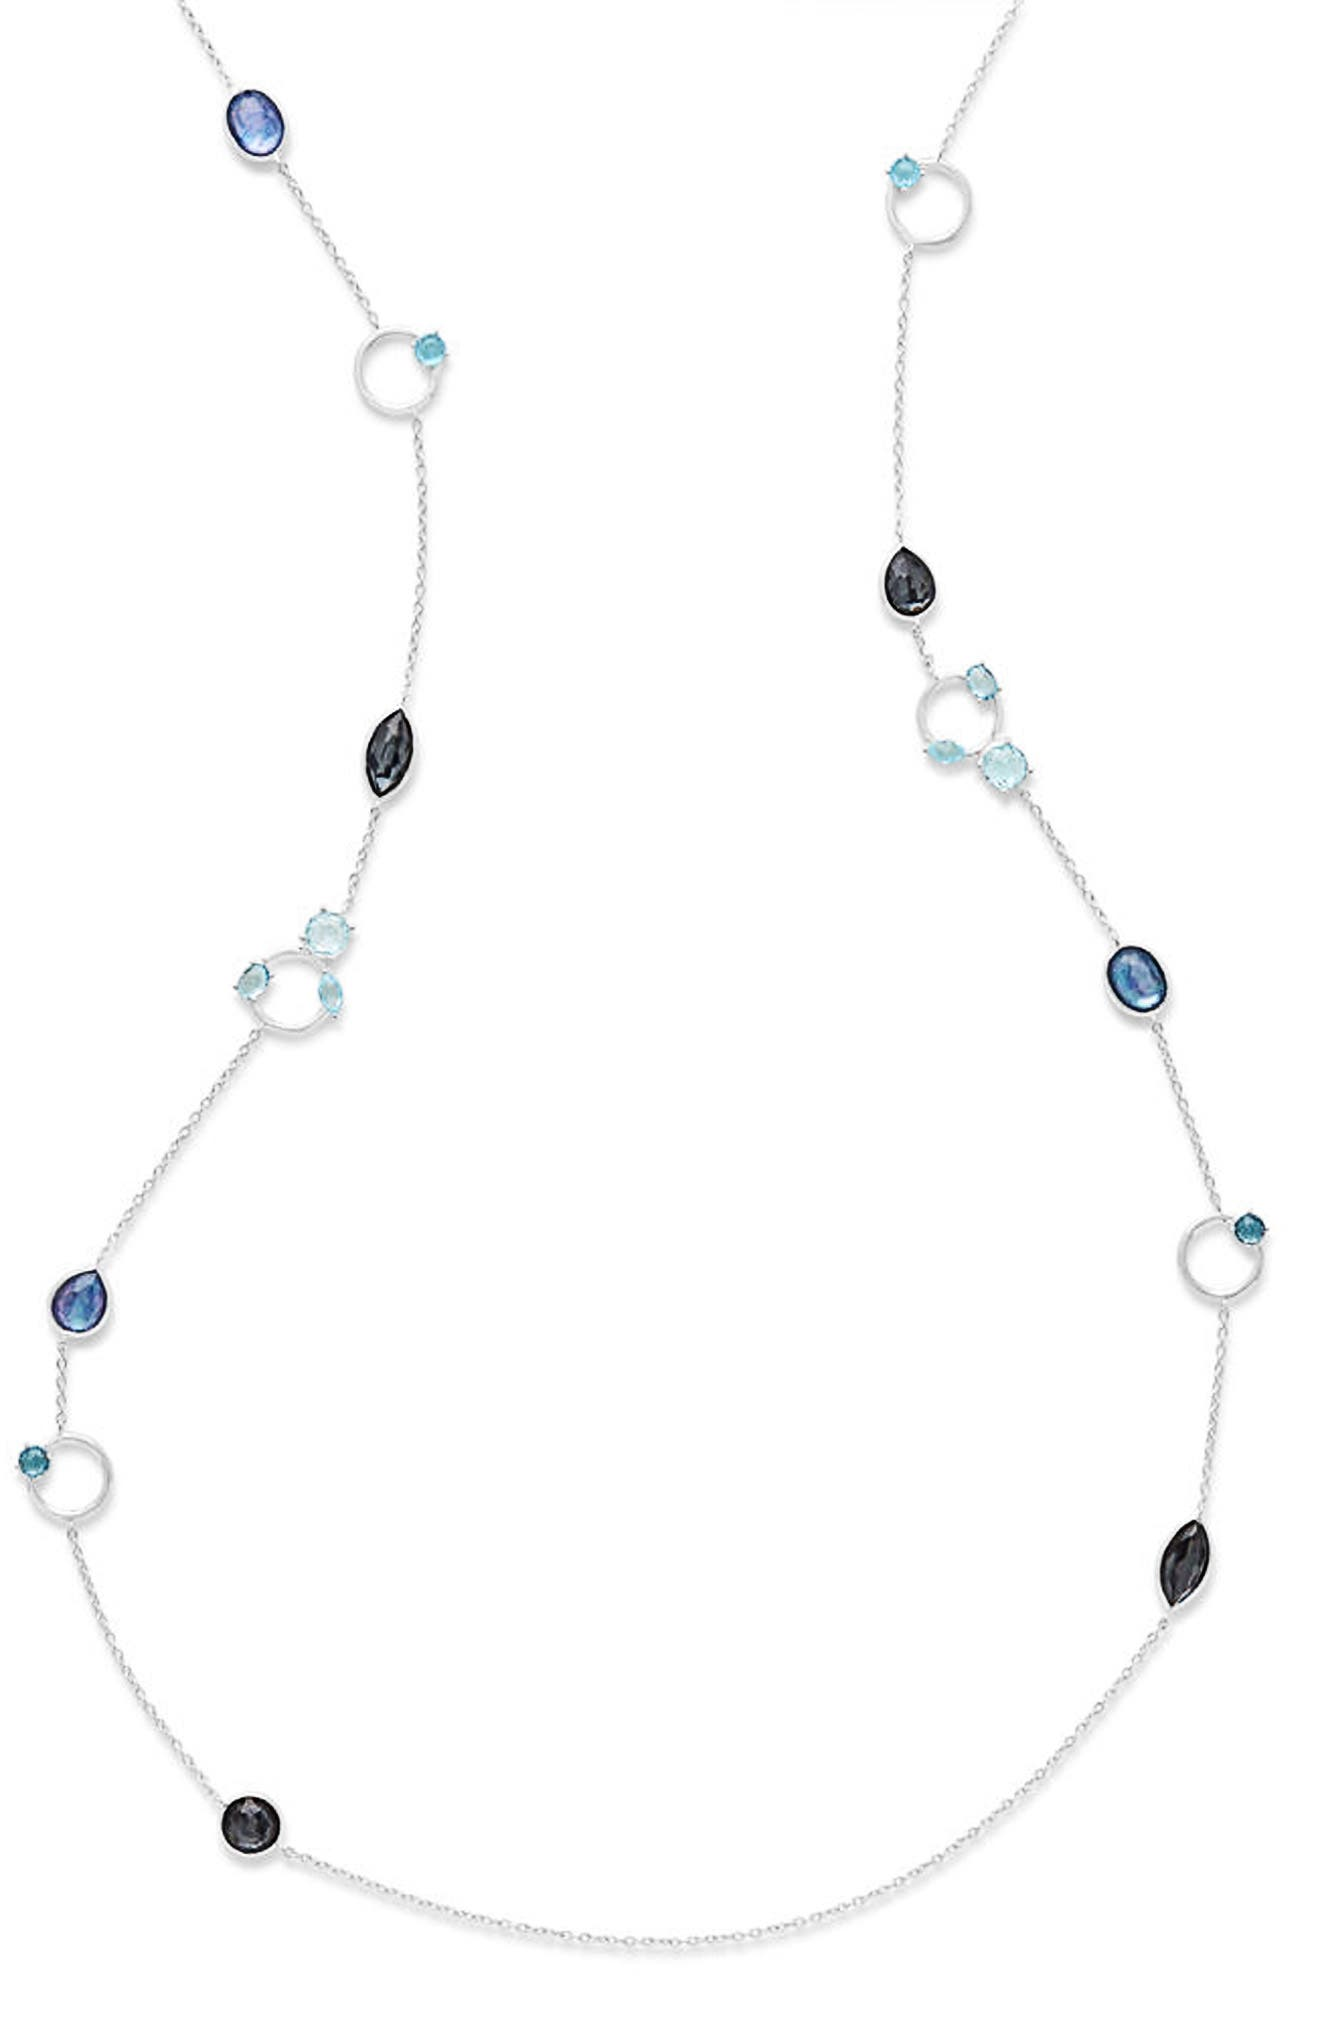 Rock Candy Strand Necklace,                             Alternate thumbnail 3, color,